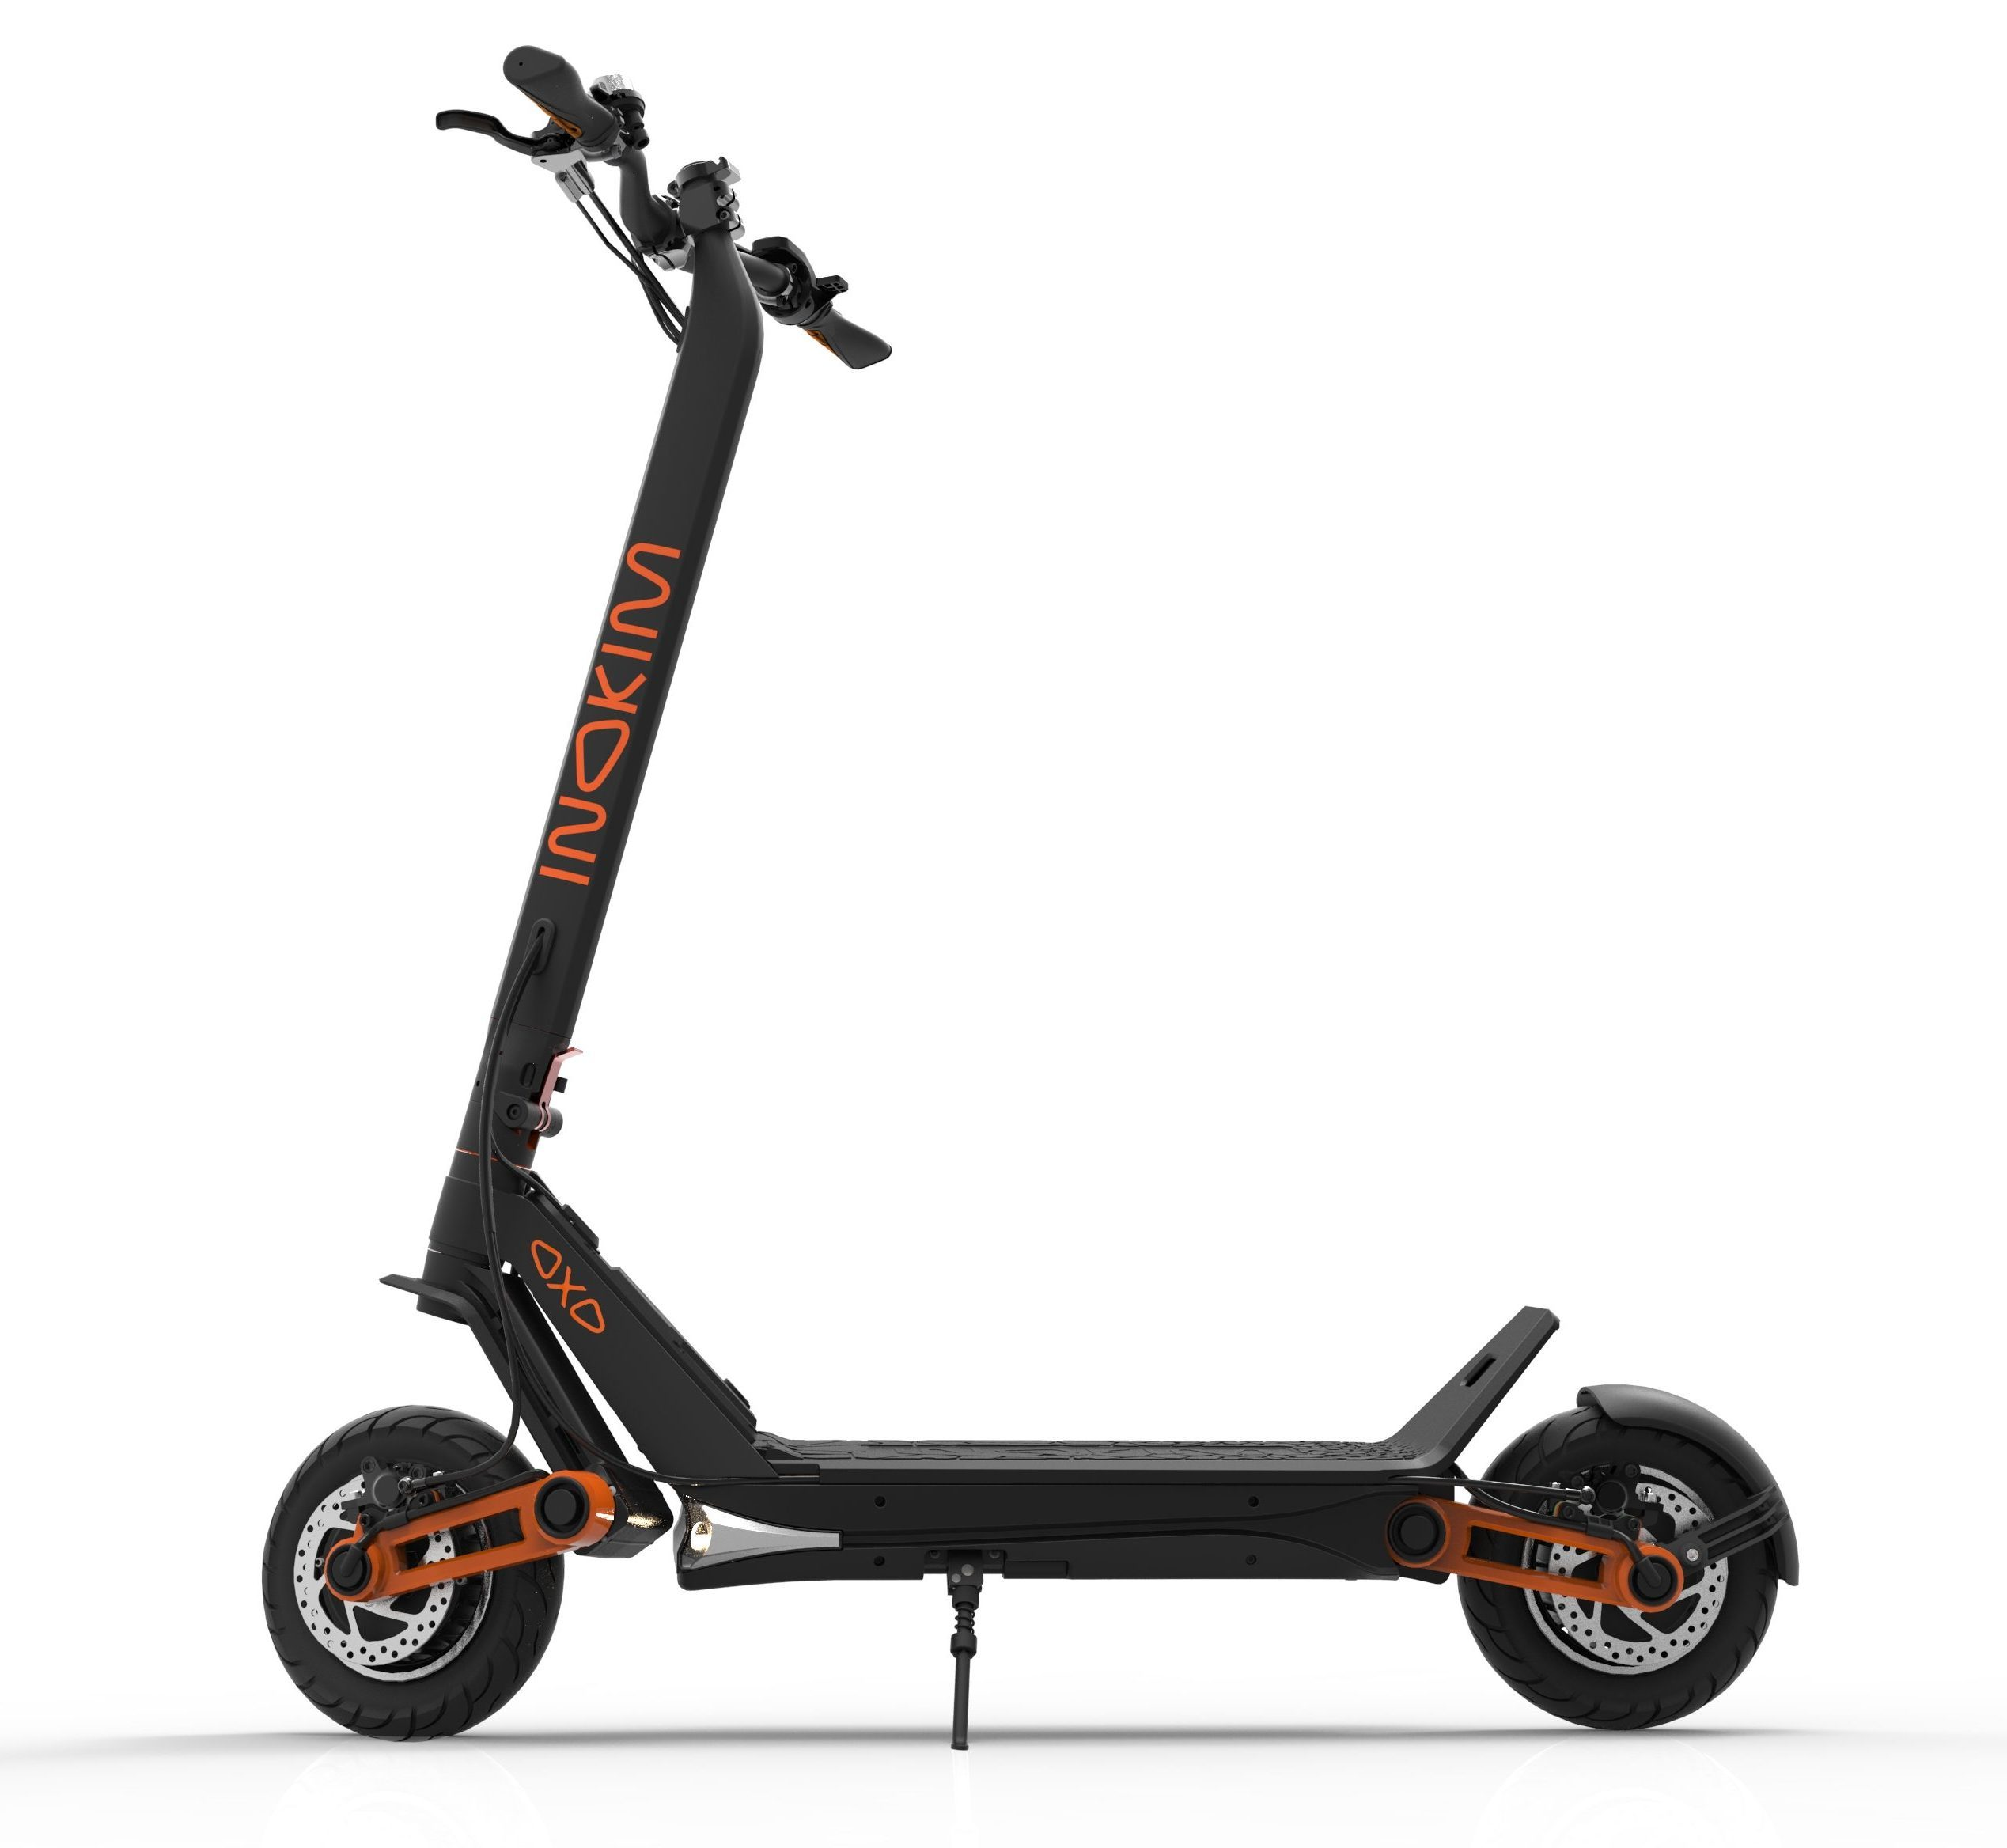 electric scooter comparison Inokim OXO